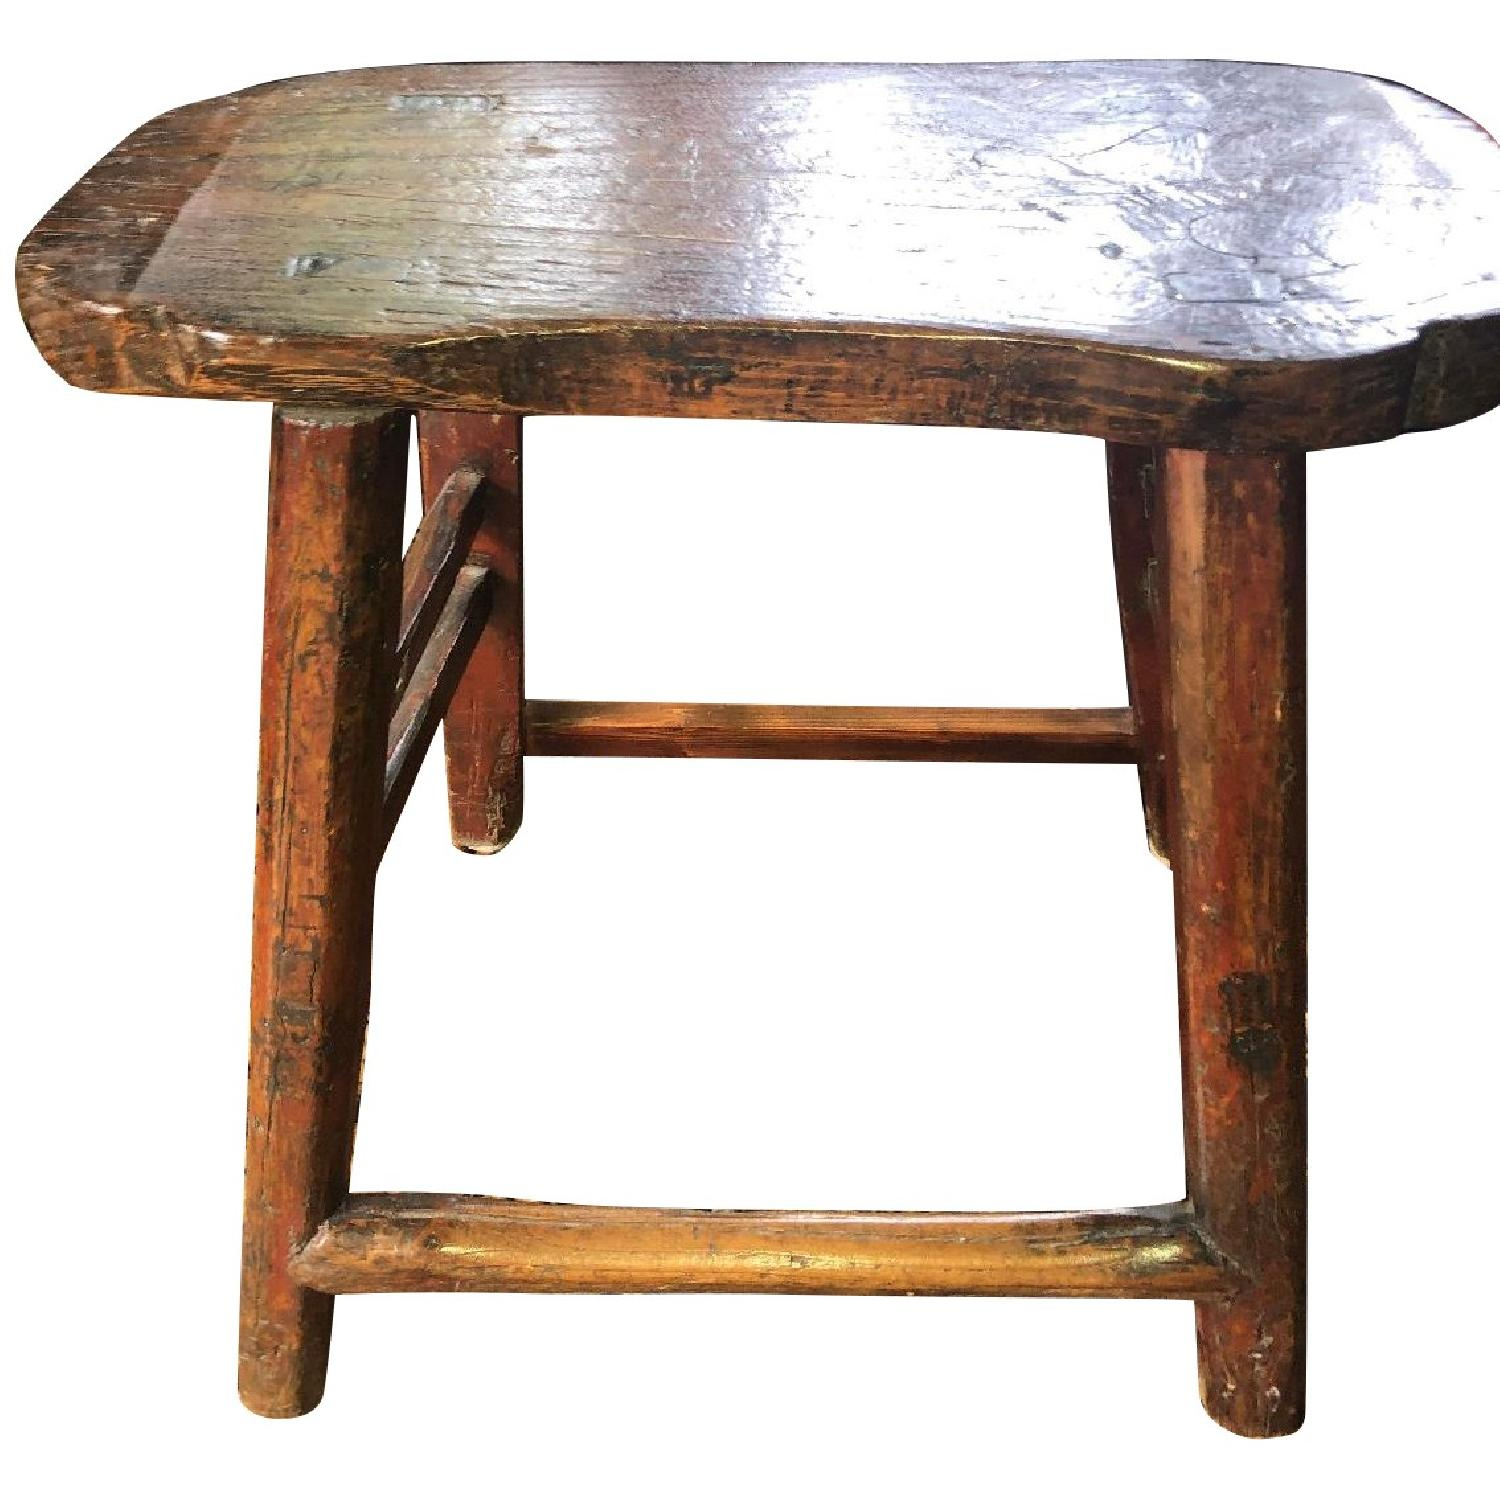 Antique Chinese Stool w/ Customs Sticker - image-0